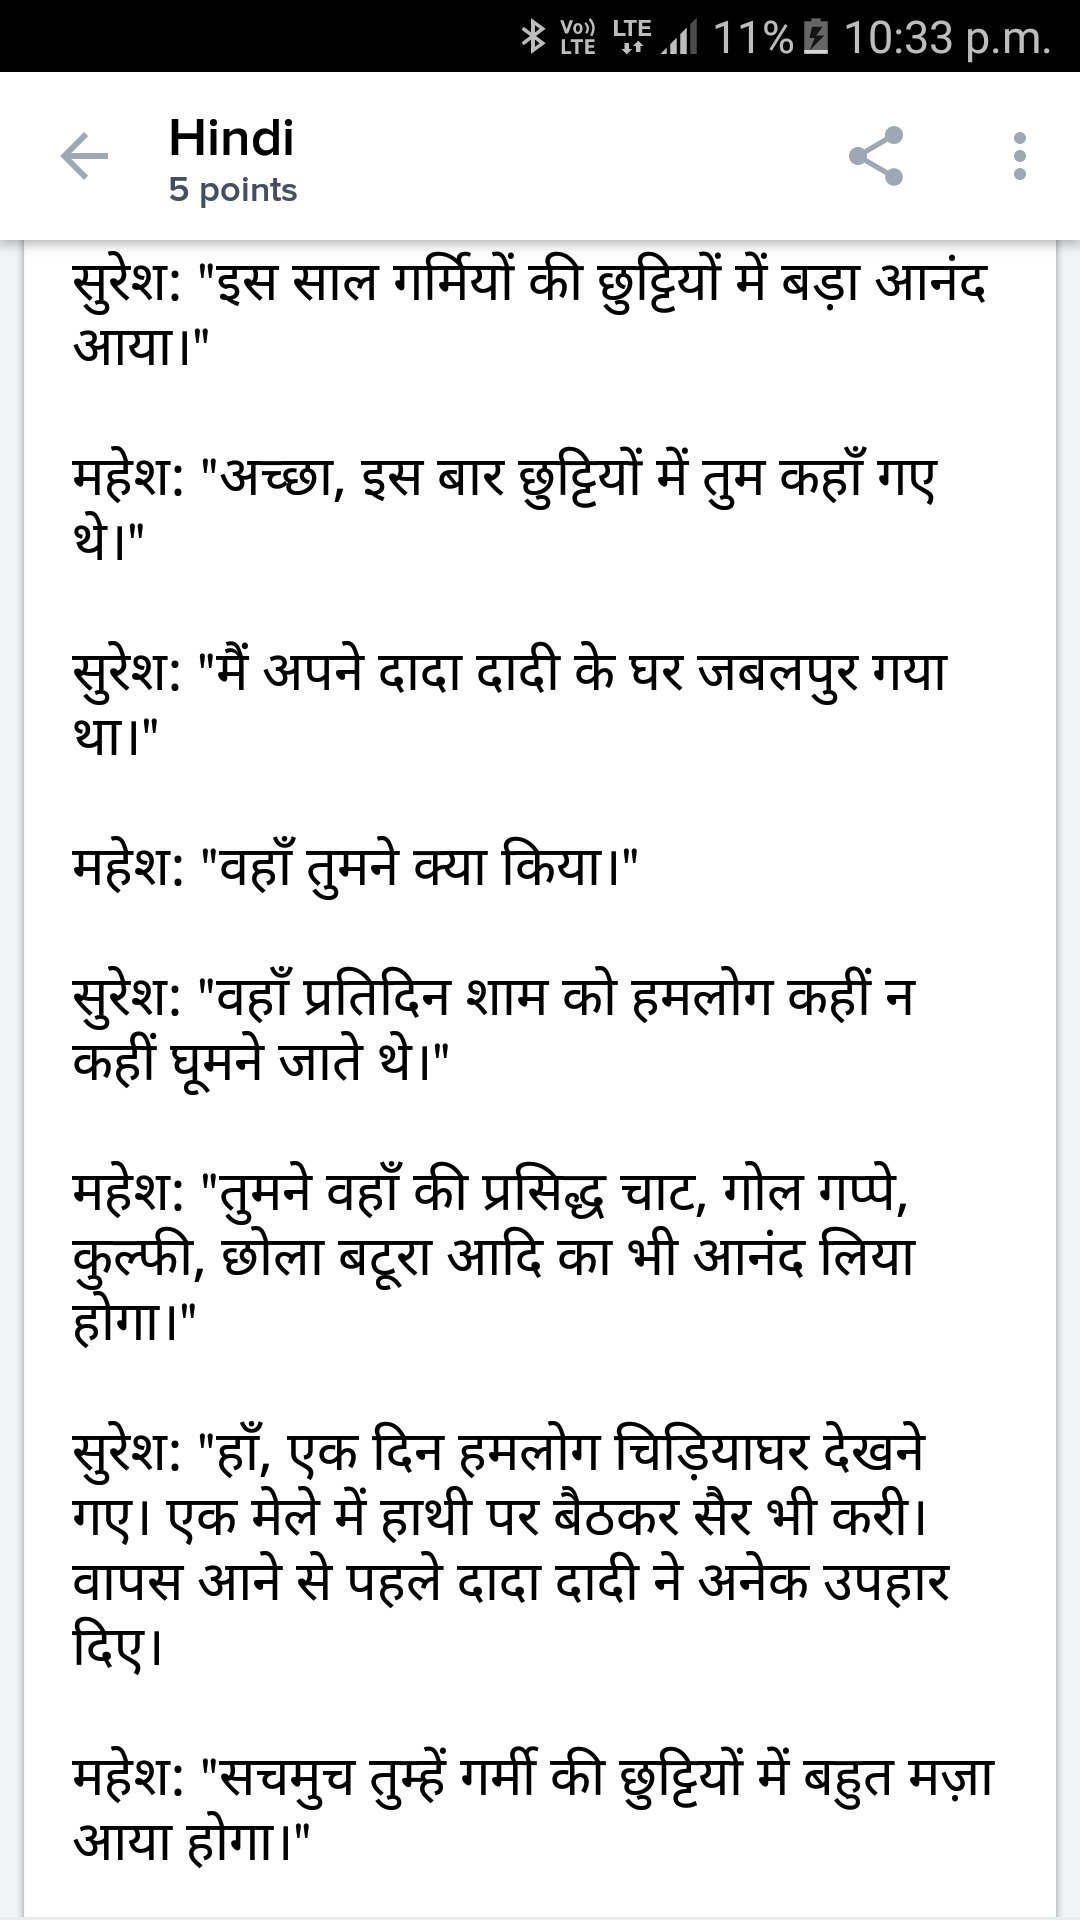 Conversation between two friends on Summer holidays in Sanskrit